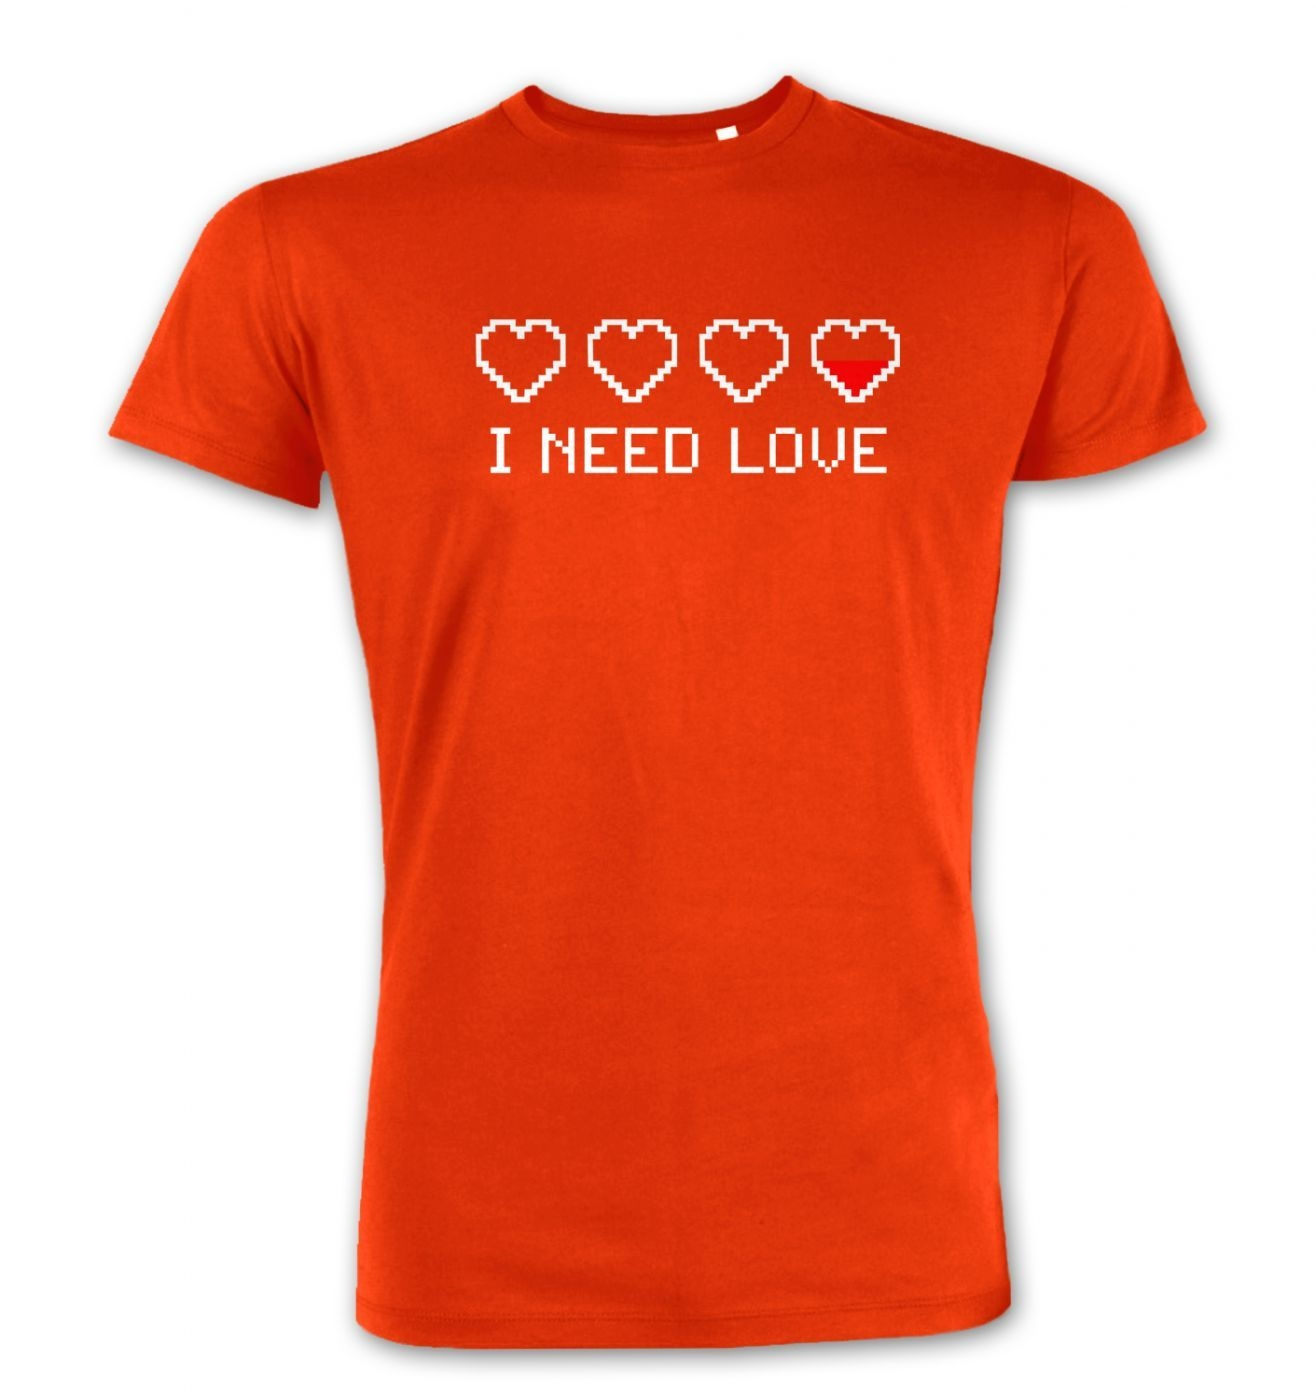 Pixellated I Need Love men's Premium t-shirt